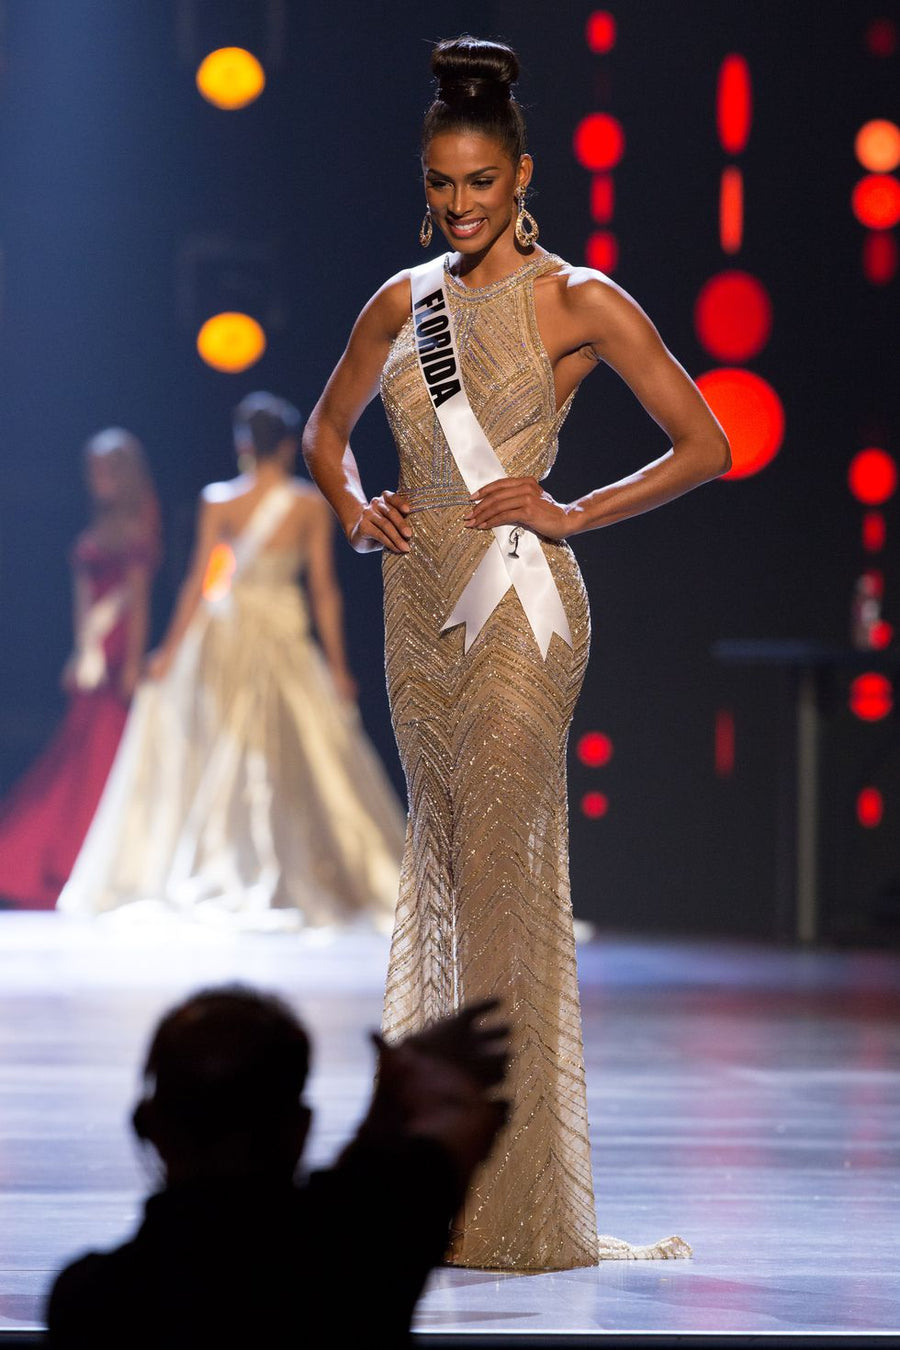 765be00ebc85 miss Florida use evening gown. Jovani Couture 39202